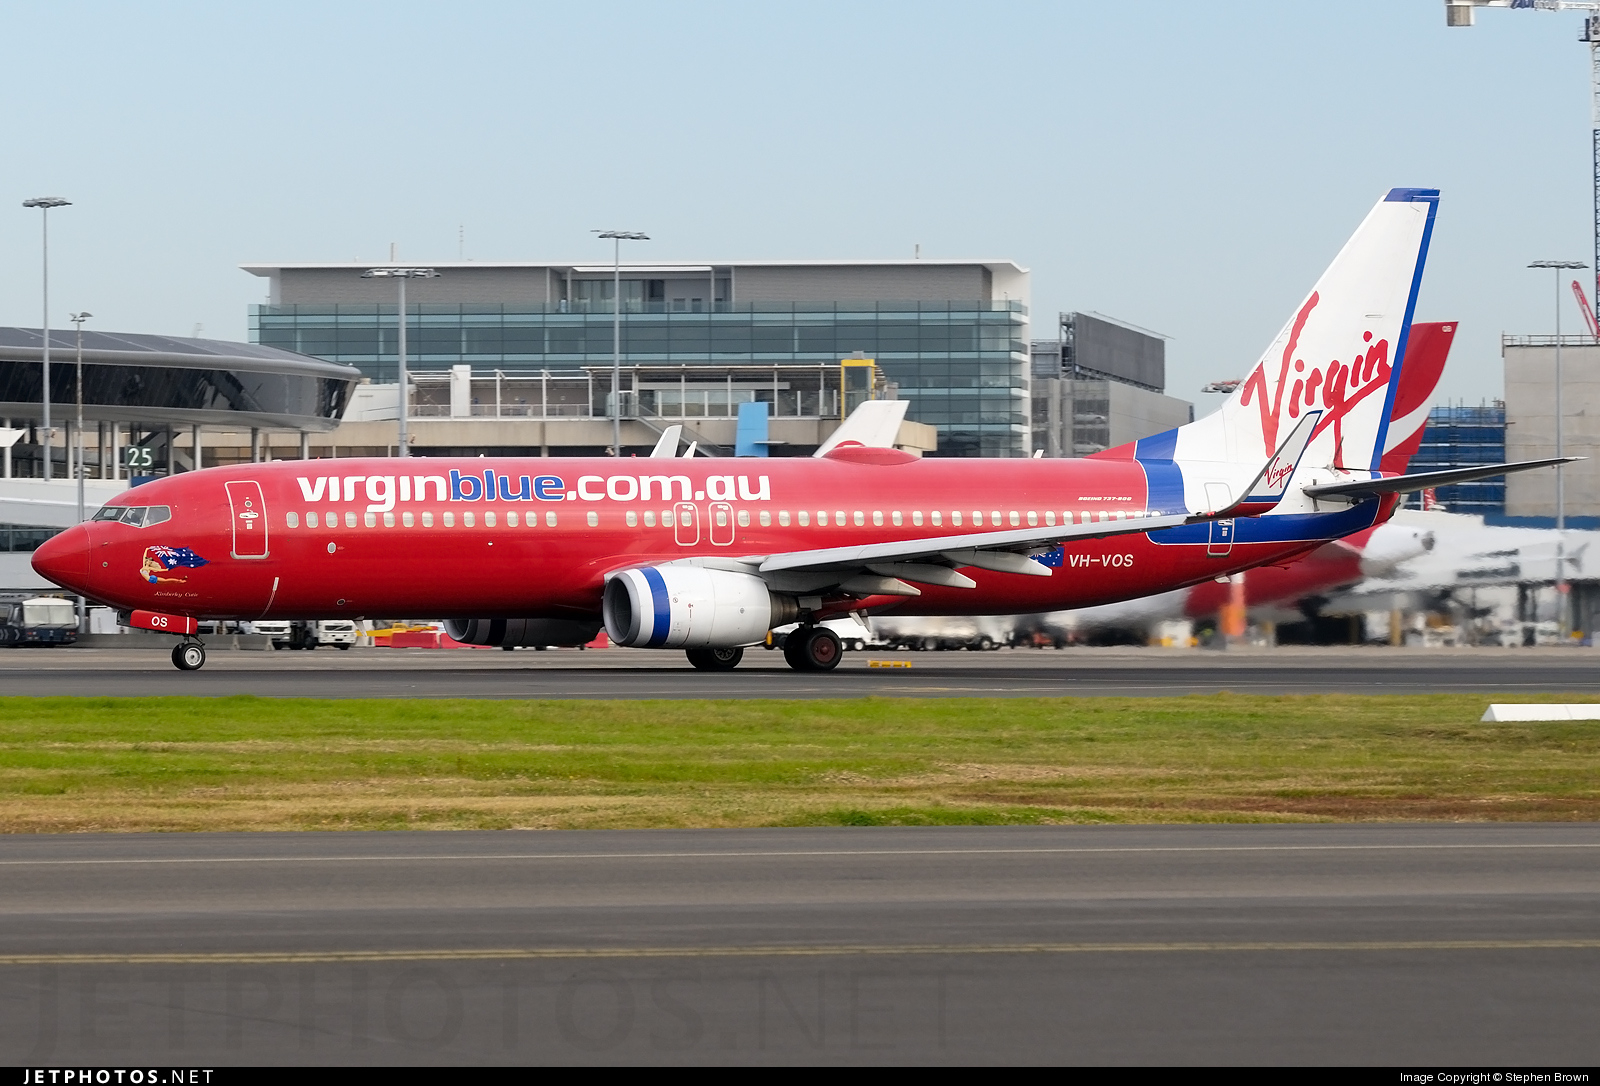 ethical responsibilities of virgin blue airlines Responsibilities for ethical research within a framework of good governance and appropriate training, responsibility for the conduct of ethical research must ultimately lie with the researchers themselves.